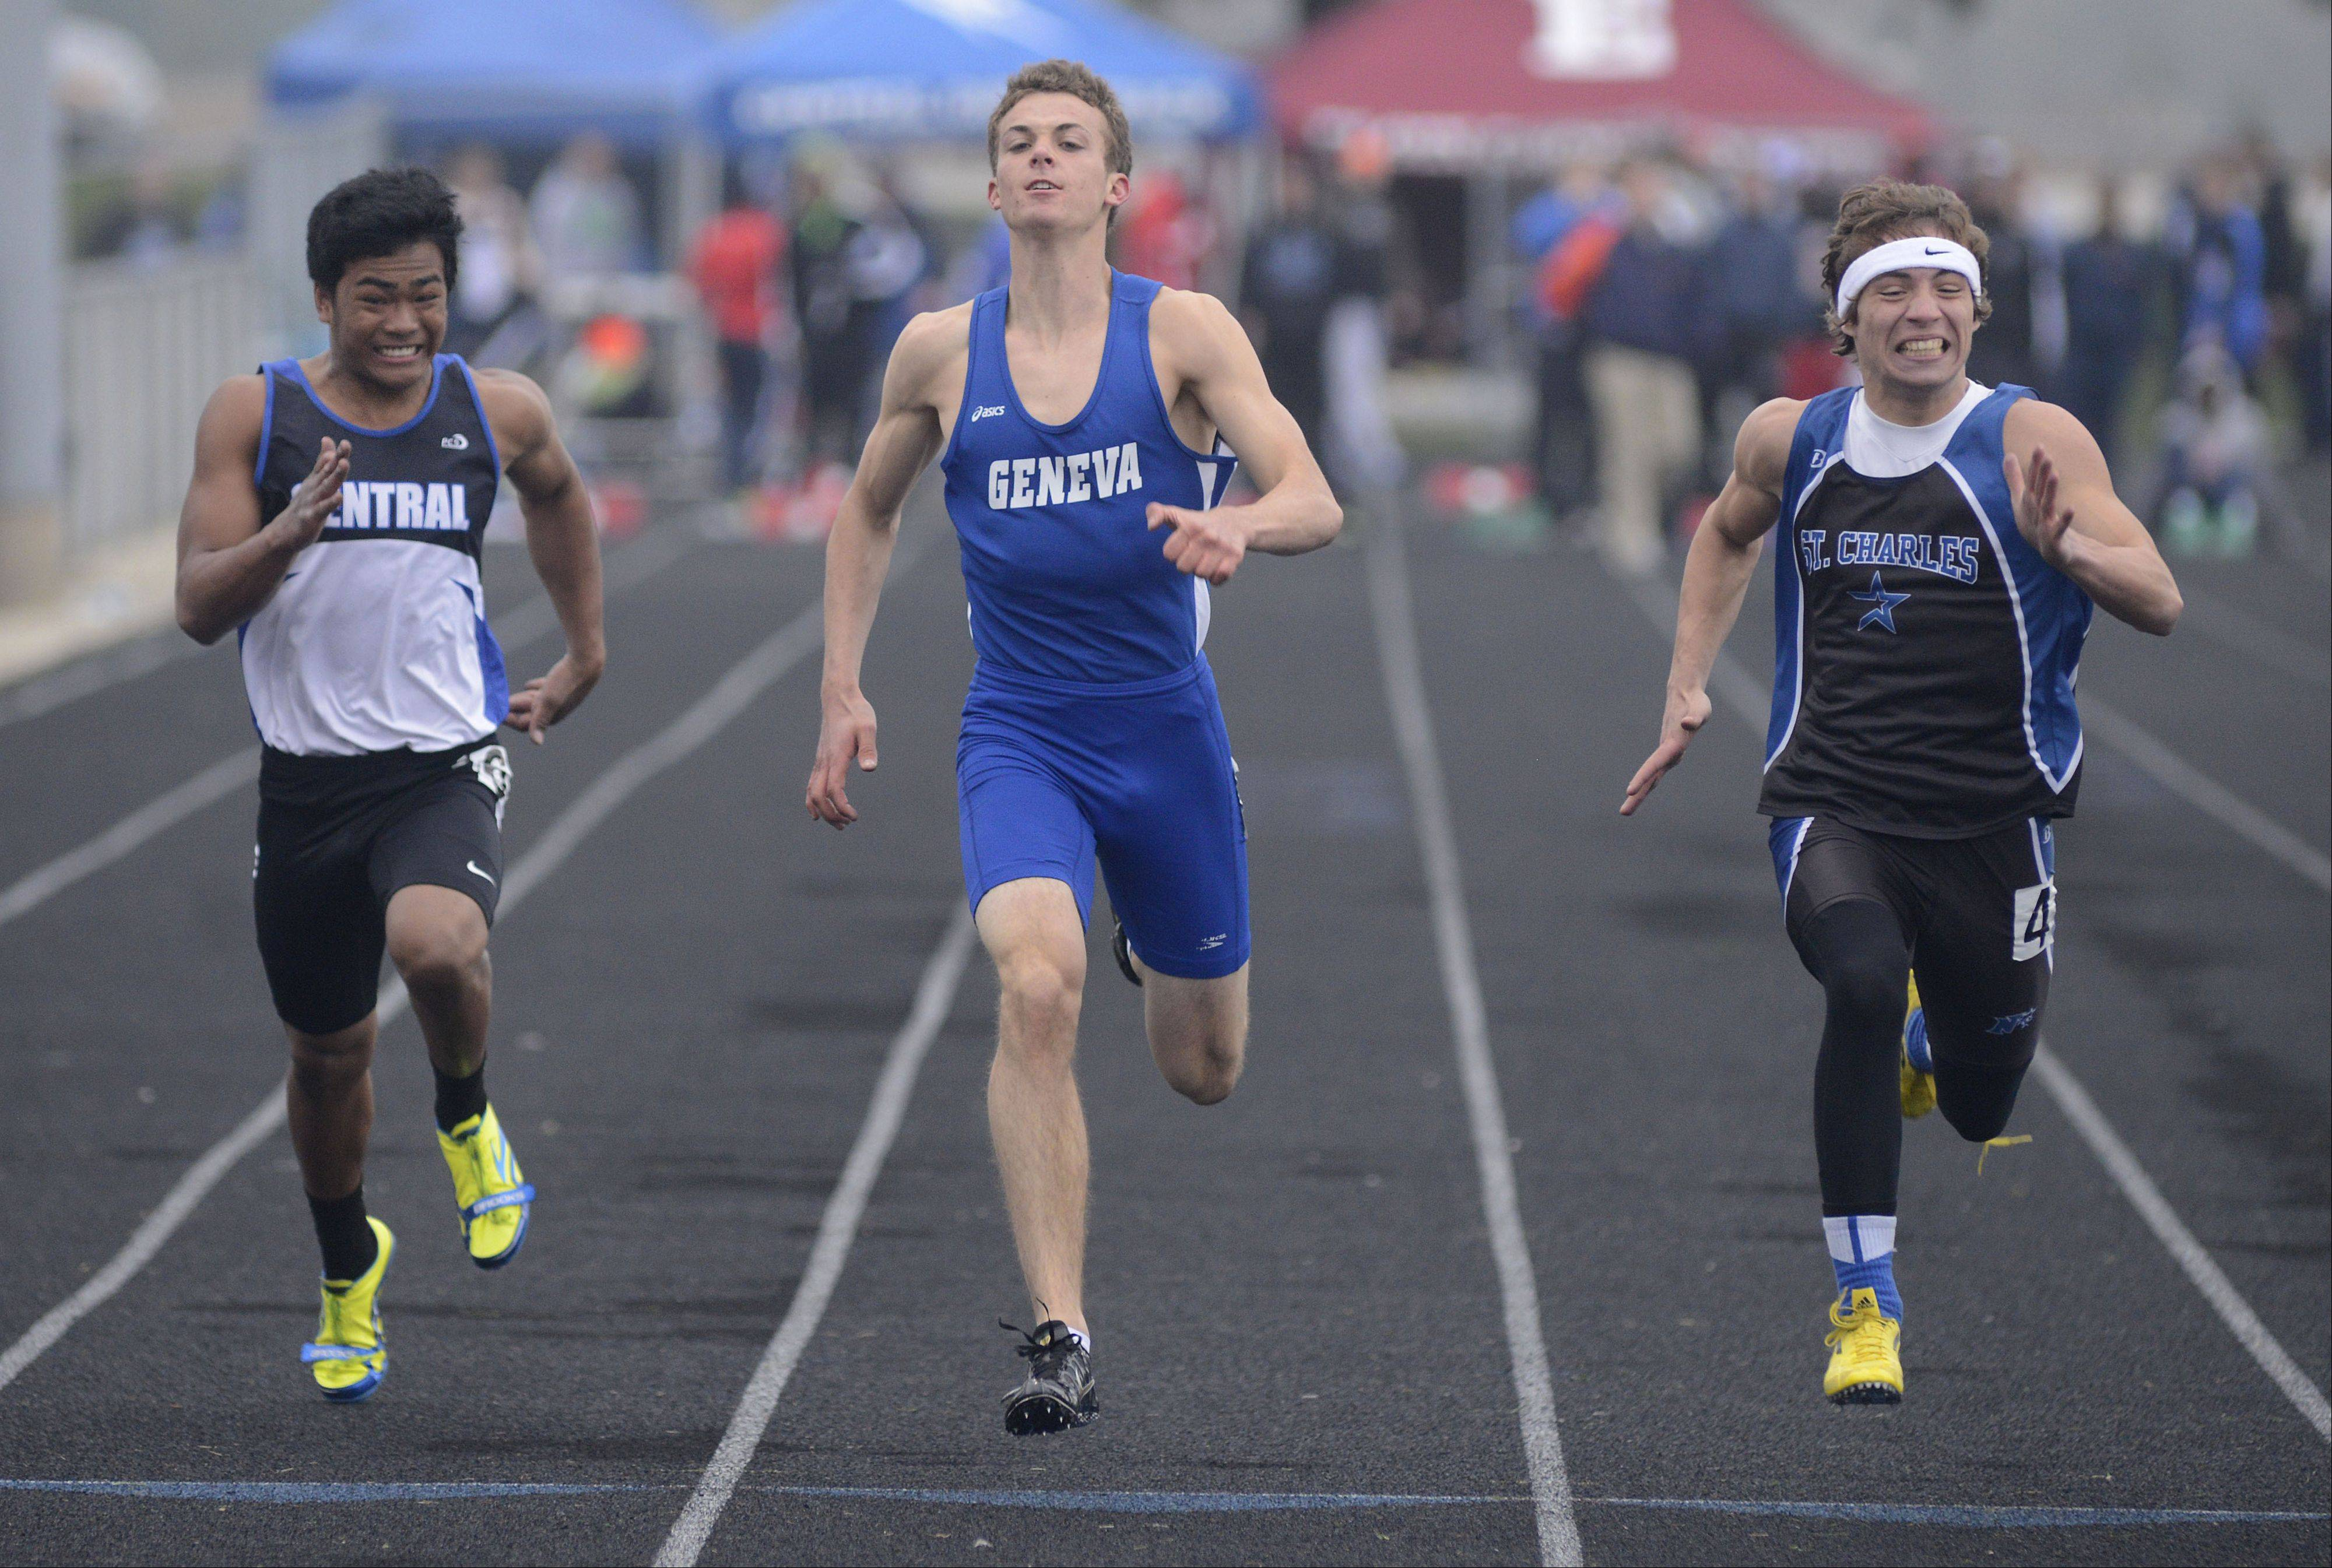 Burlington Central's Jason Berango, Geneva's Tim Roels and St. Charles North's Grant Loess in the 100-meter dash final at the Kane County boys track meet at Burlington Central on Friday.